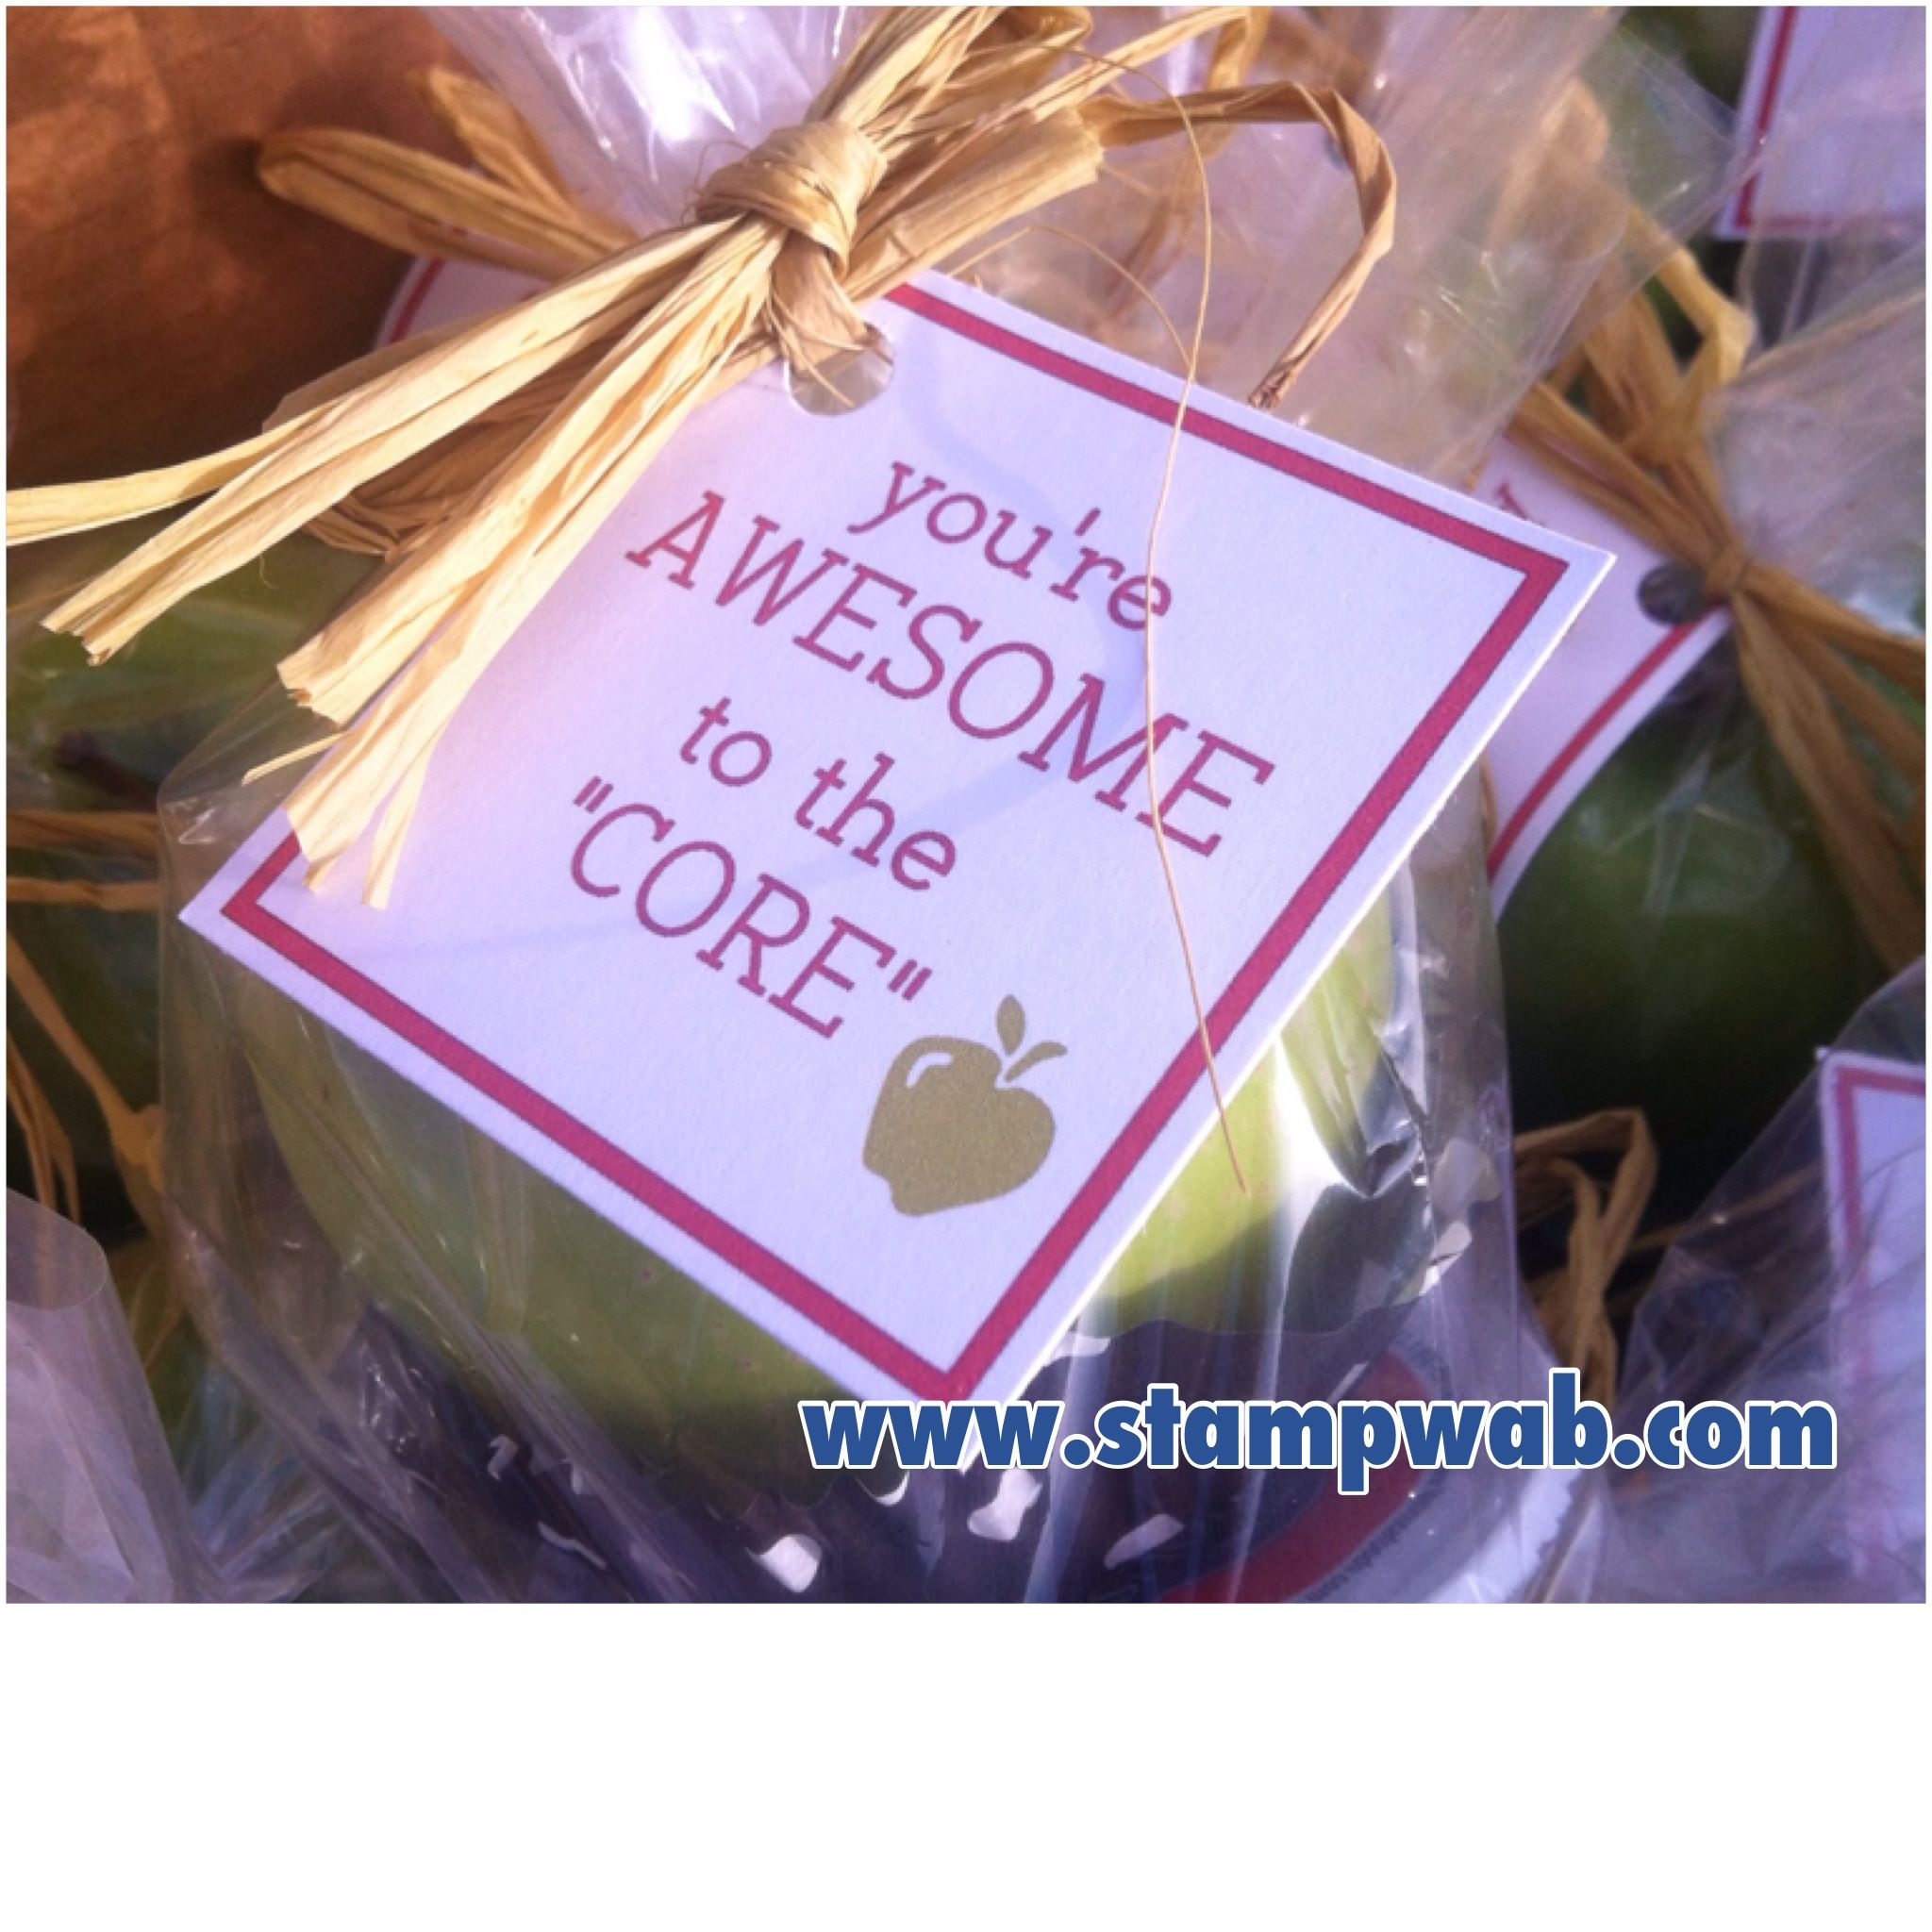 Teacher Appreciation Week! I made the tags for apples & a small container of caramel, for all out teachers & staff   www.stampwab.com #employeeappreciationideas